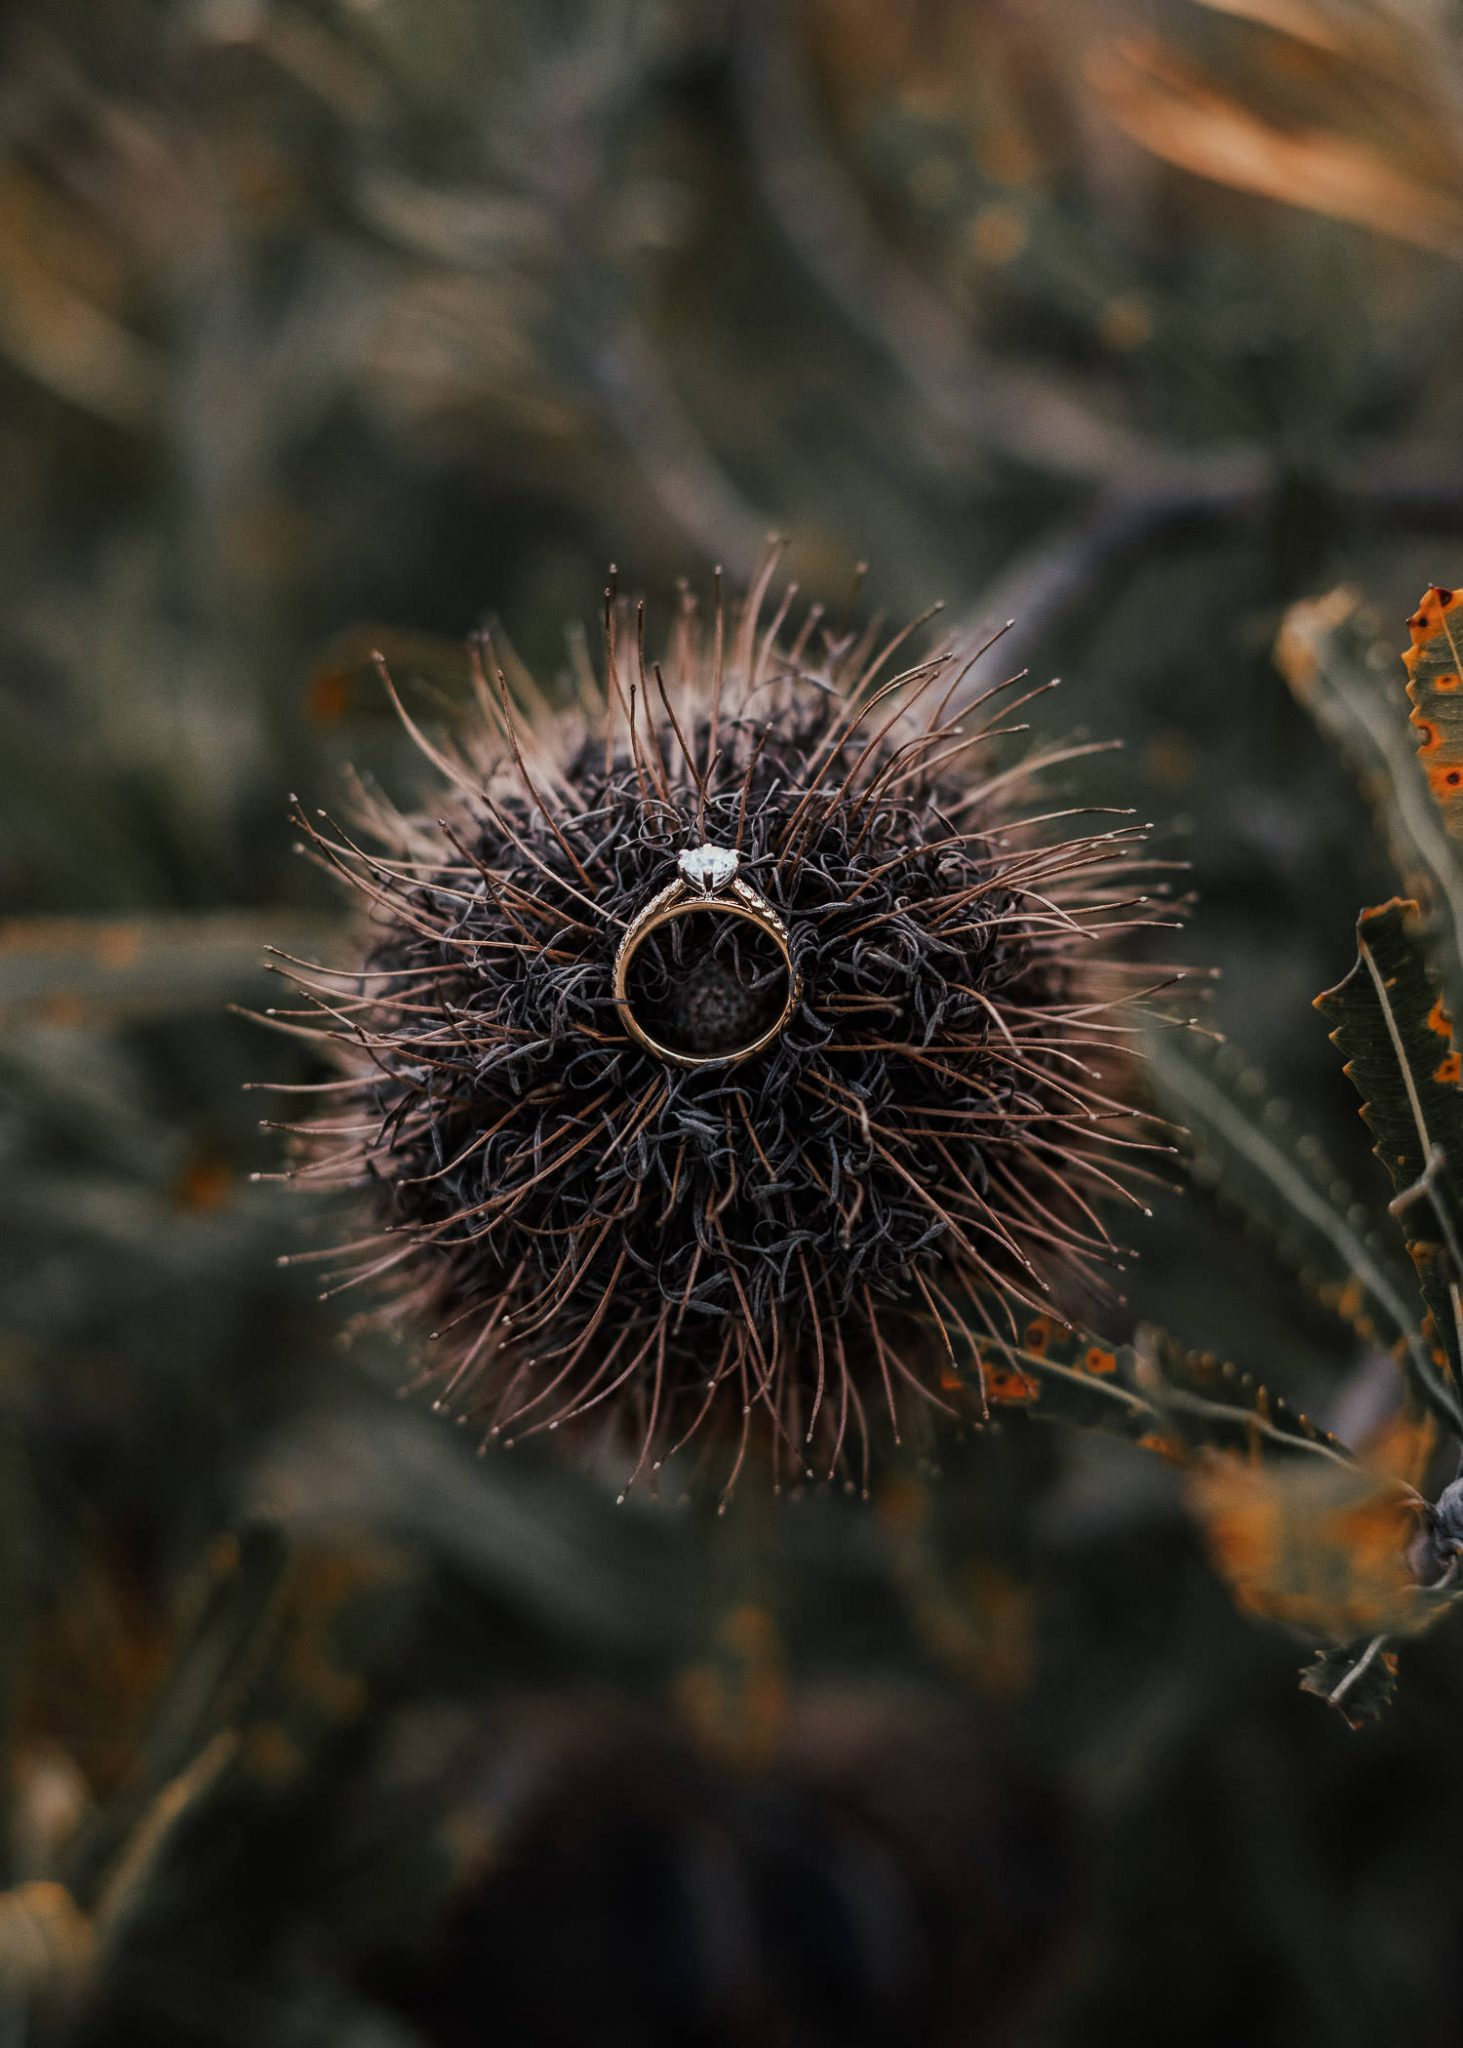 engagement ring on a banksia